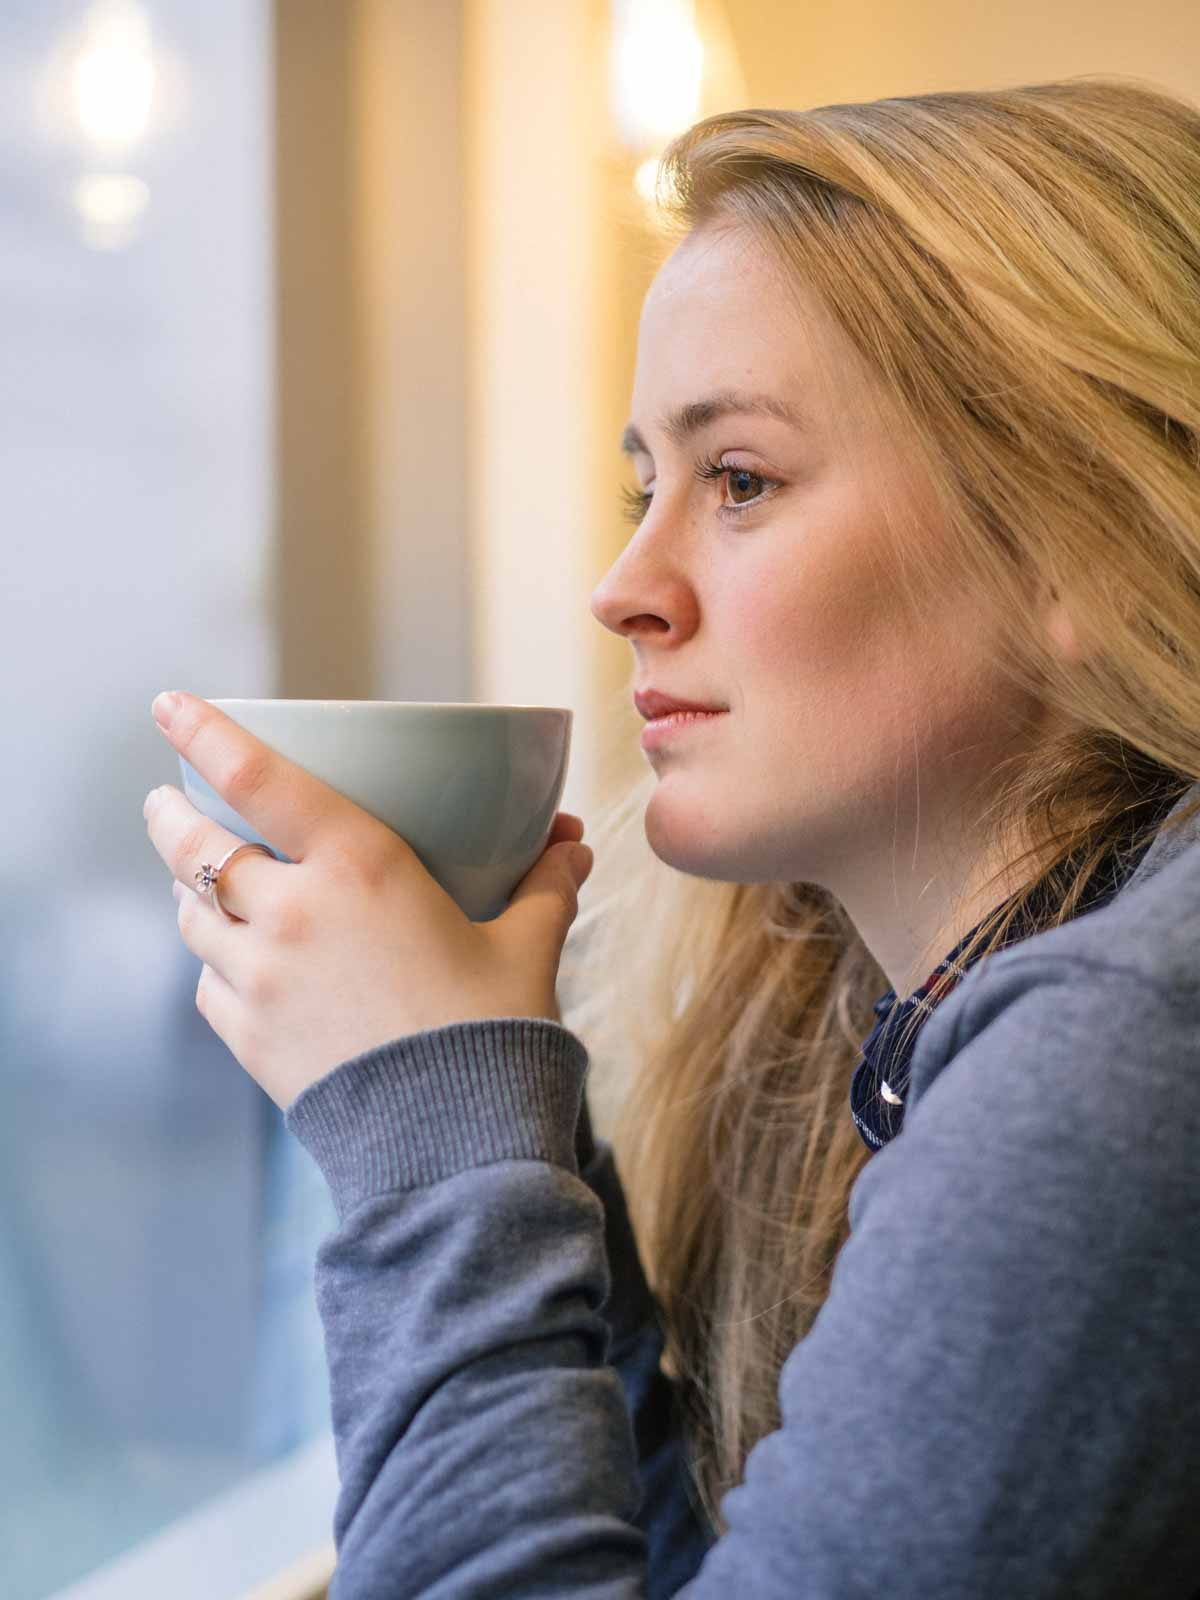 coffee morning portrait, window light, Olympus EM5 markii, Olympus 45mm f1.8